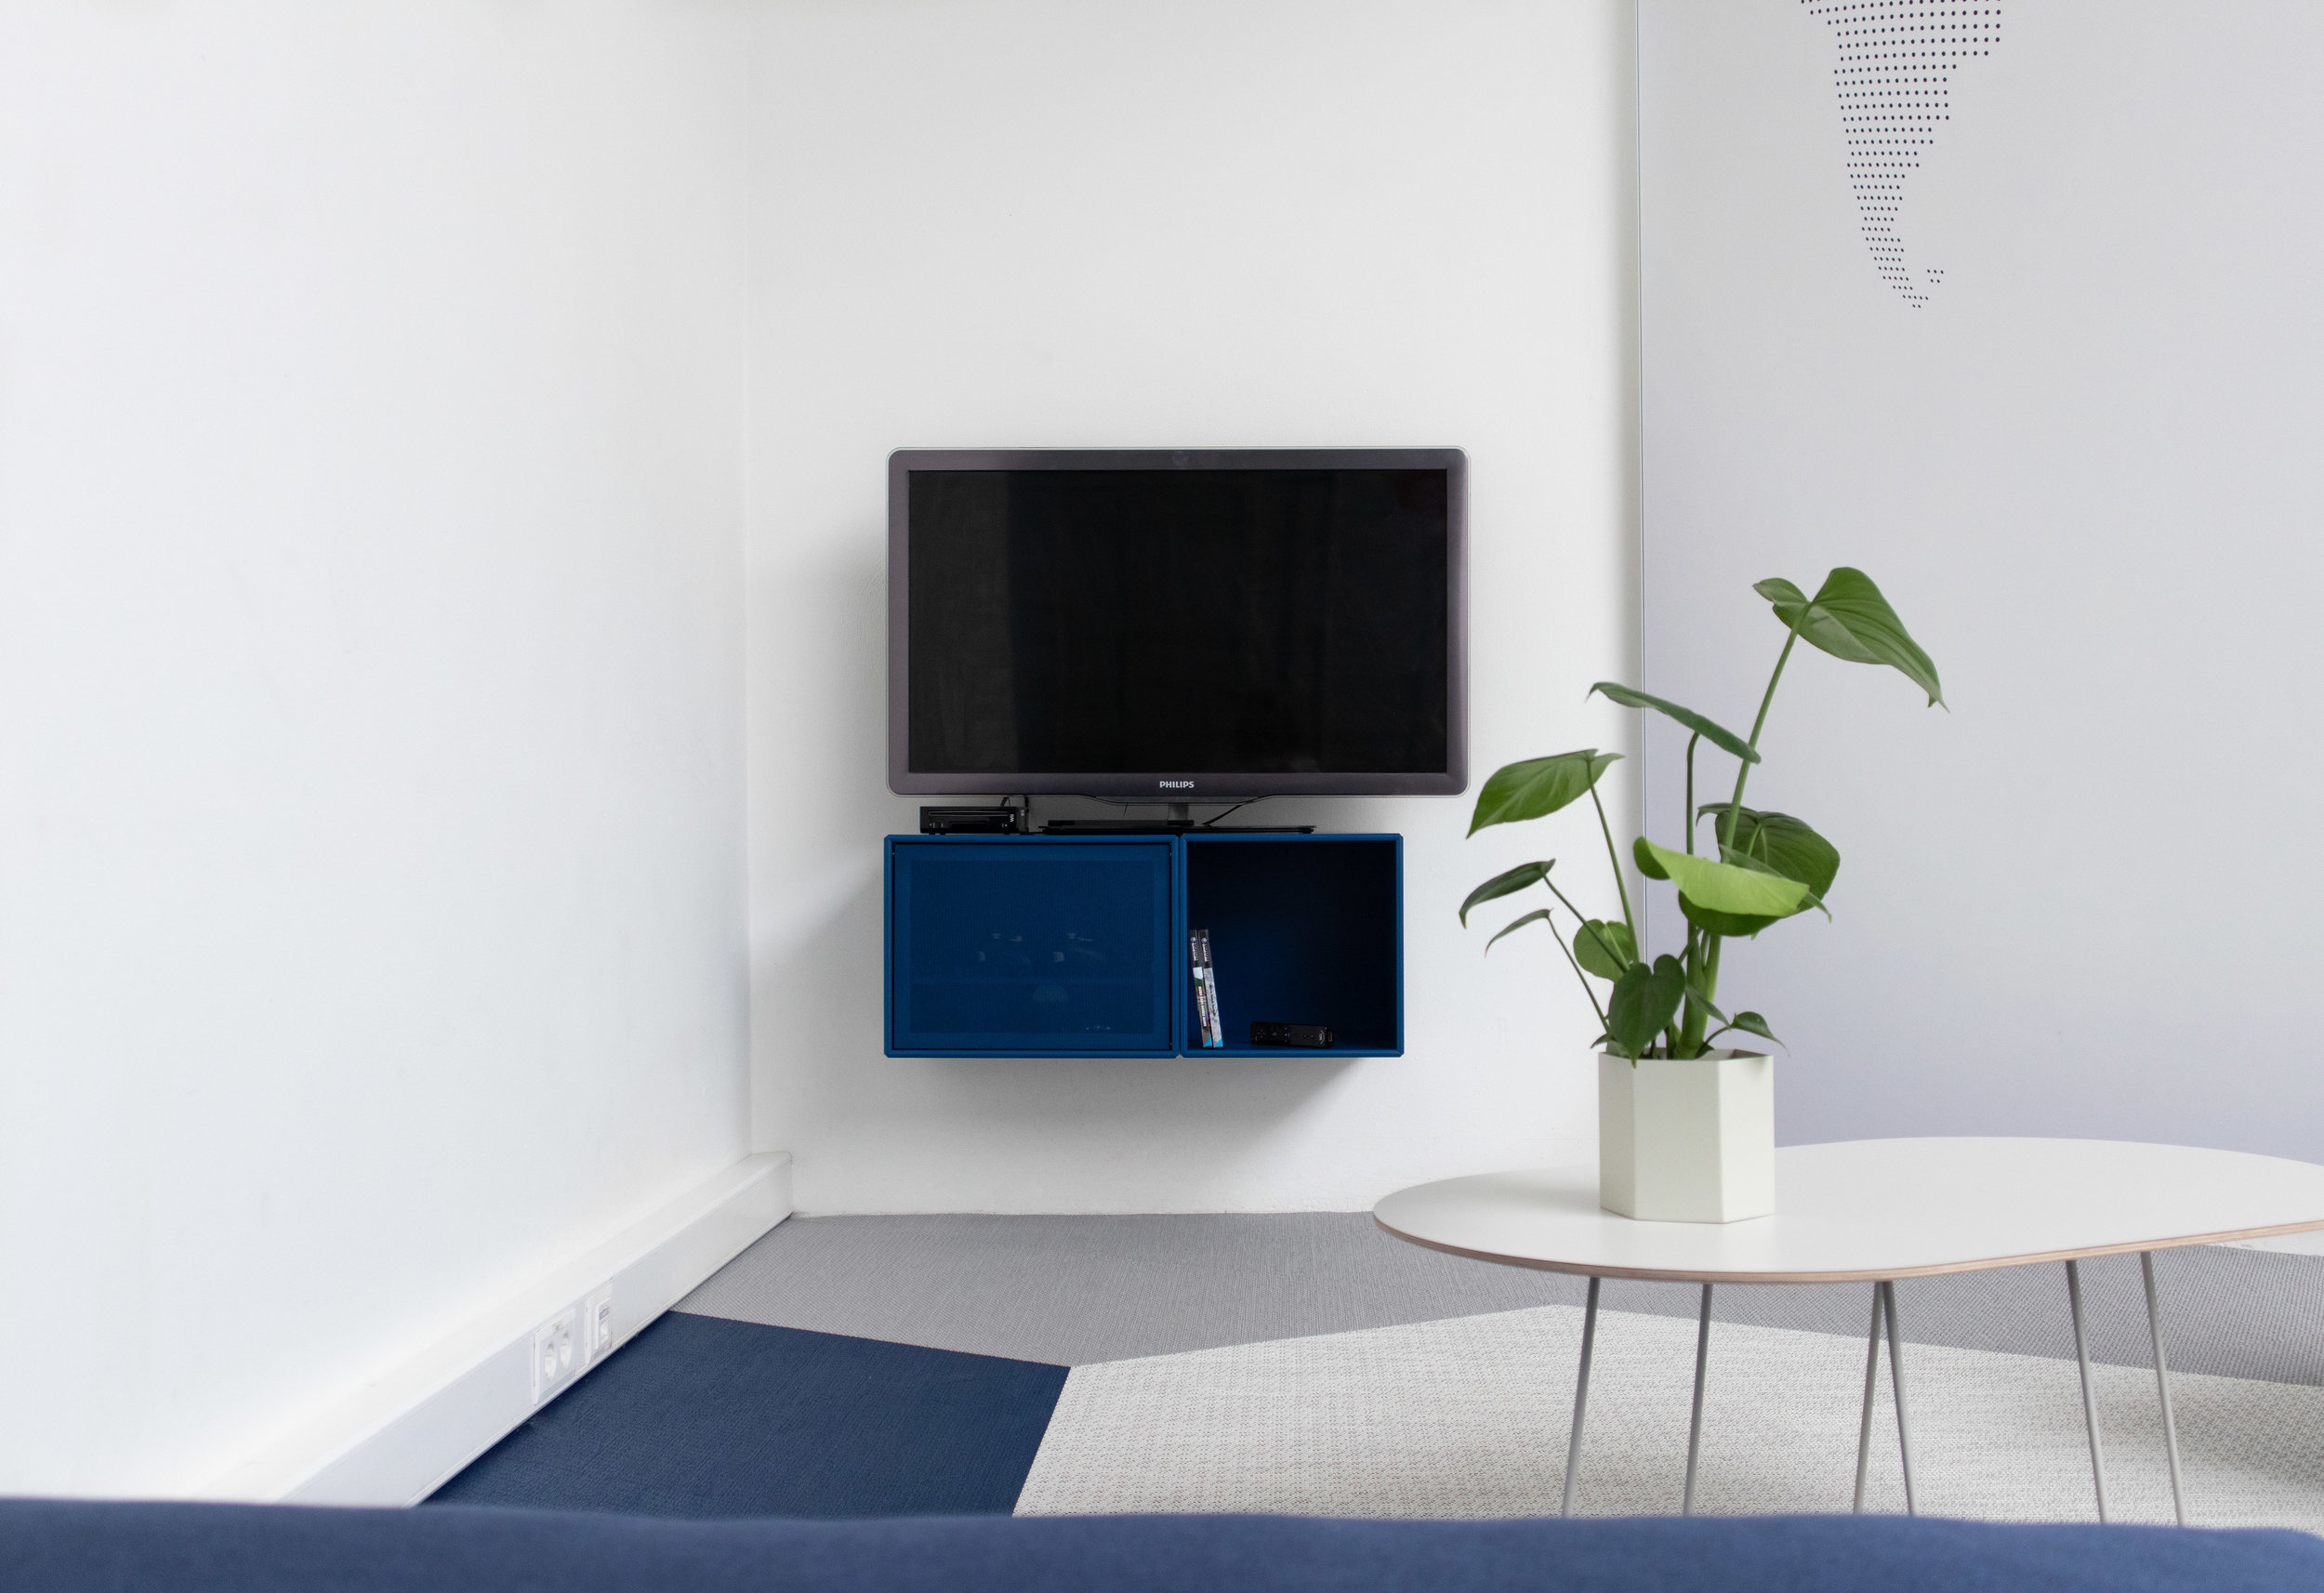 Lounge space, interior design project for Kors IT headquarters in Eindhoven 6.jpg